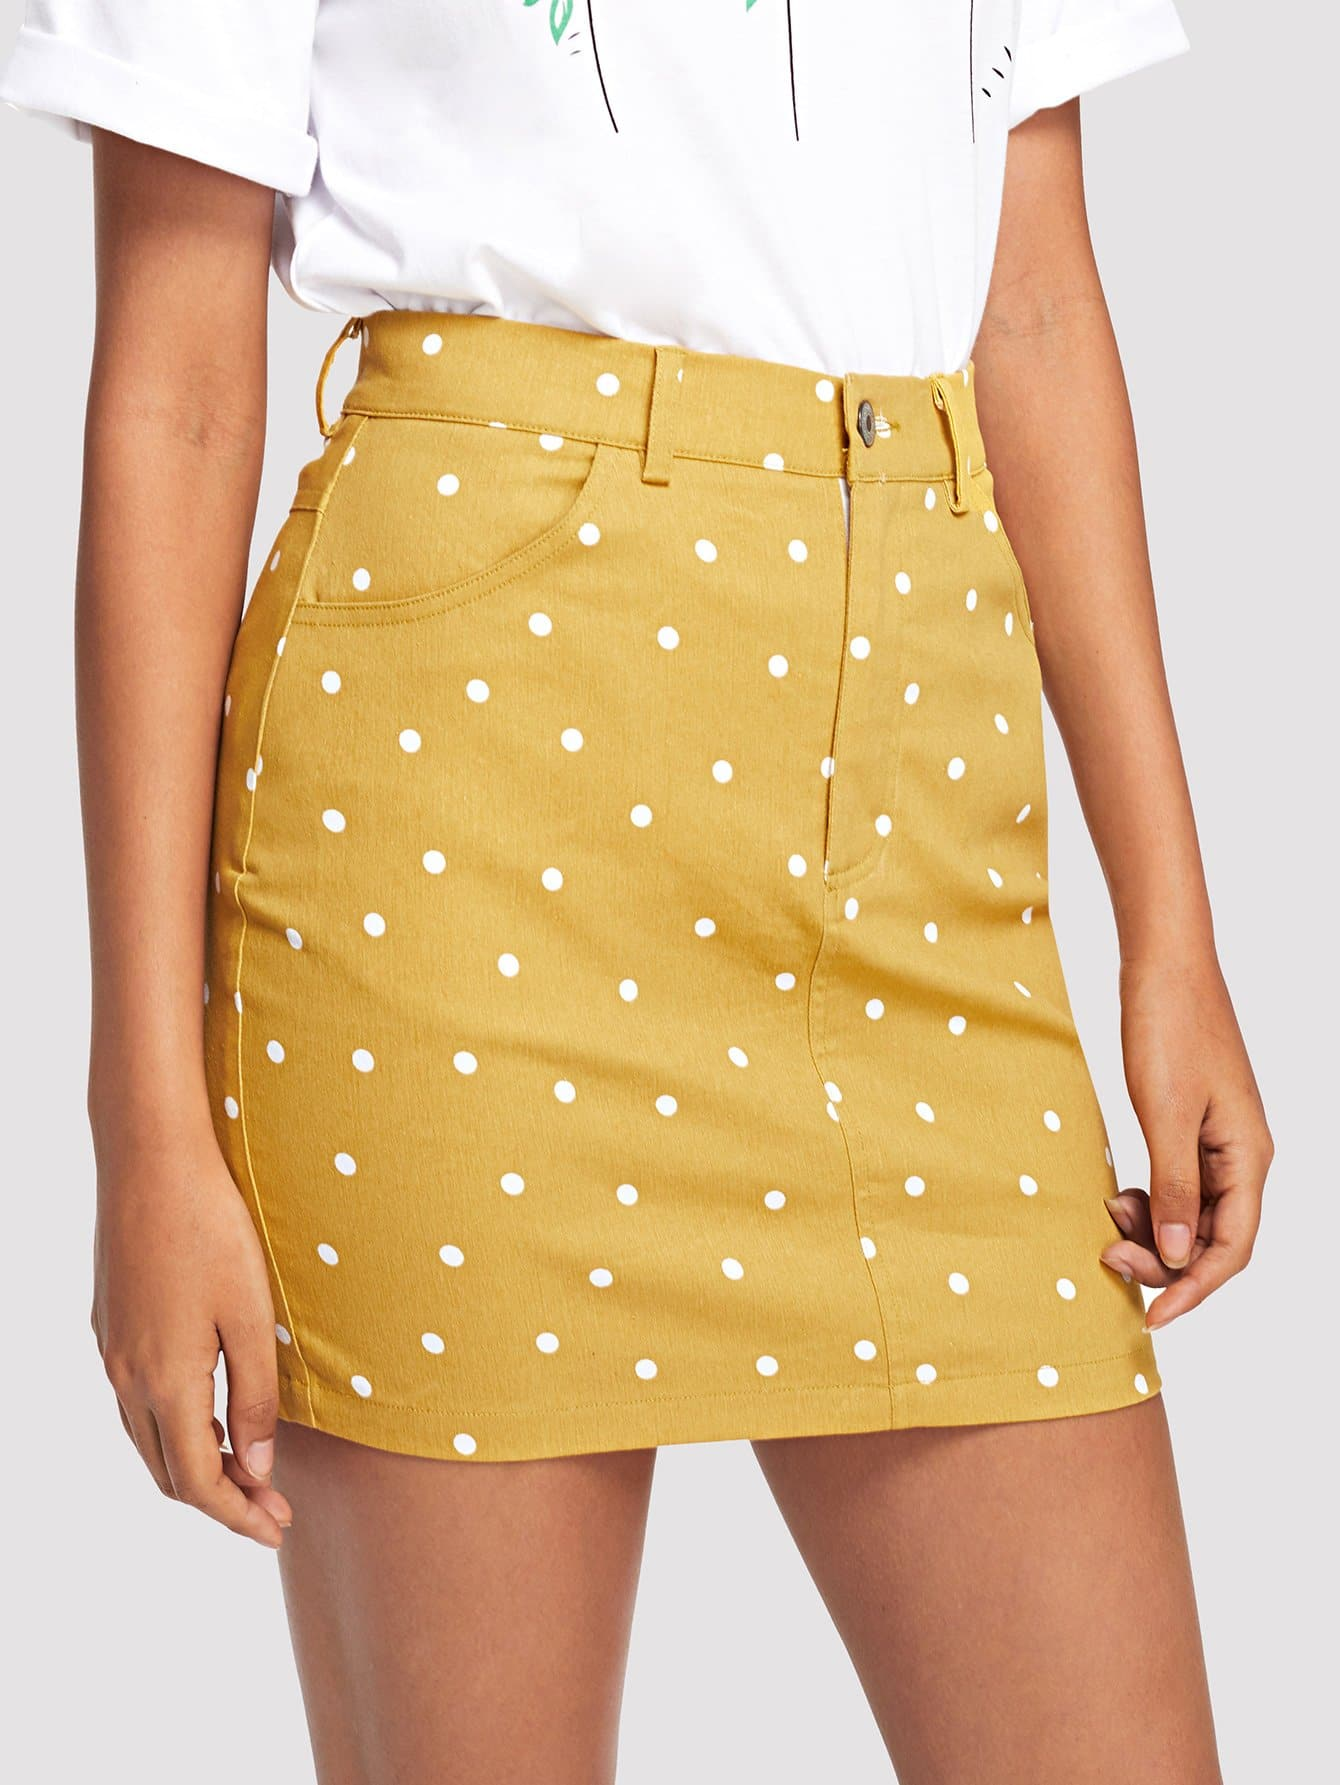 High Waist Pocket Patched Dot Skirt картридж cactus cs ce261a для hp сolor laserjet cp4025 cp4525 cm4540mfp голубой 11000стр